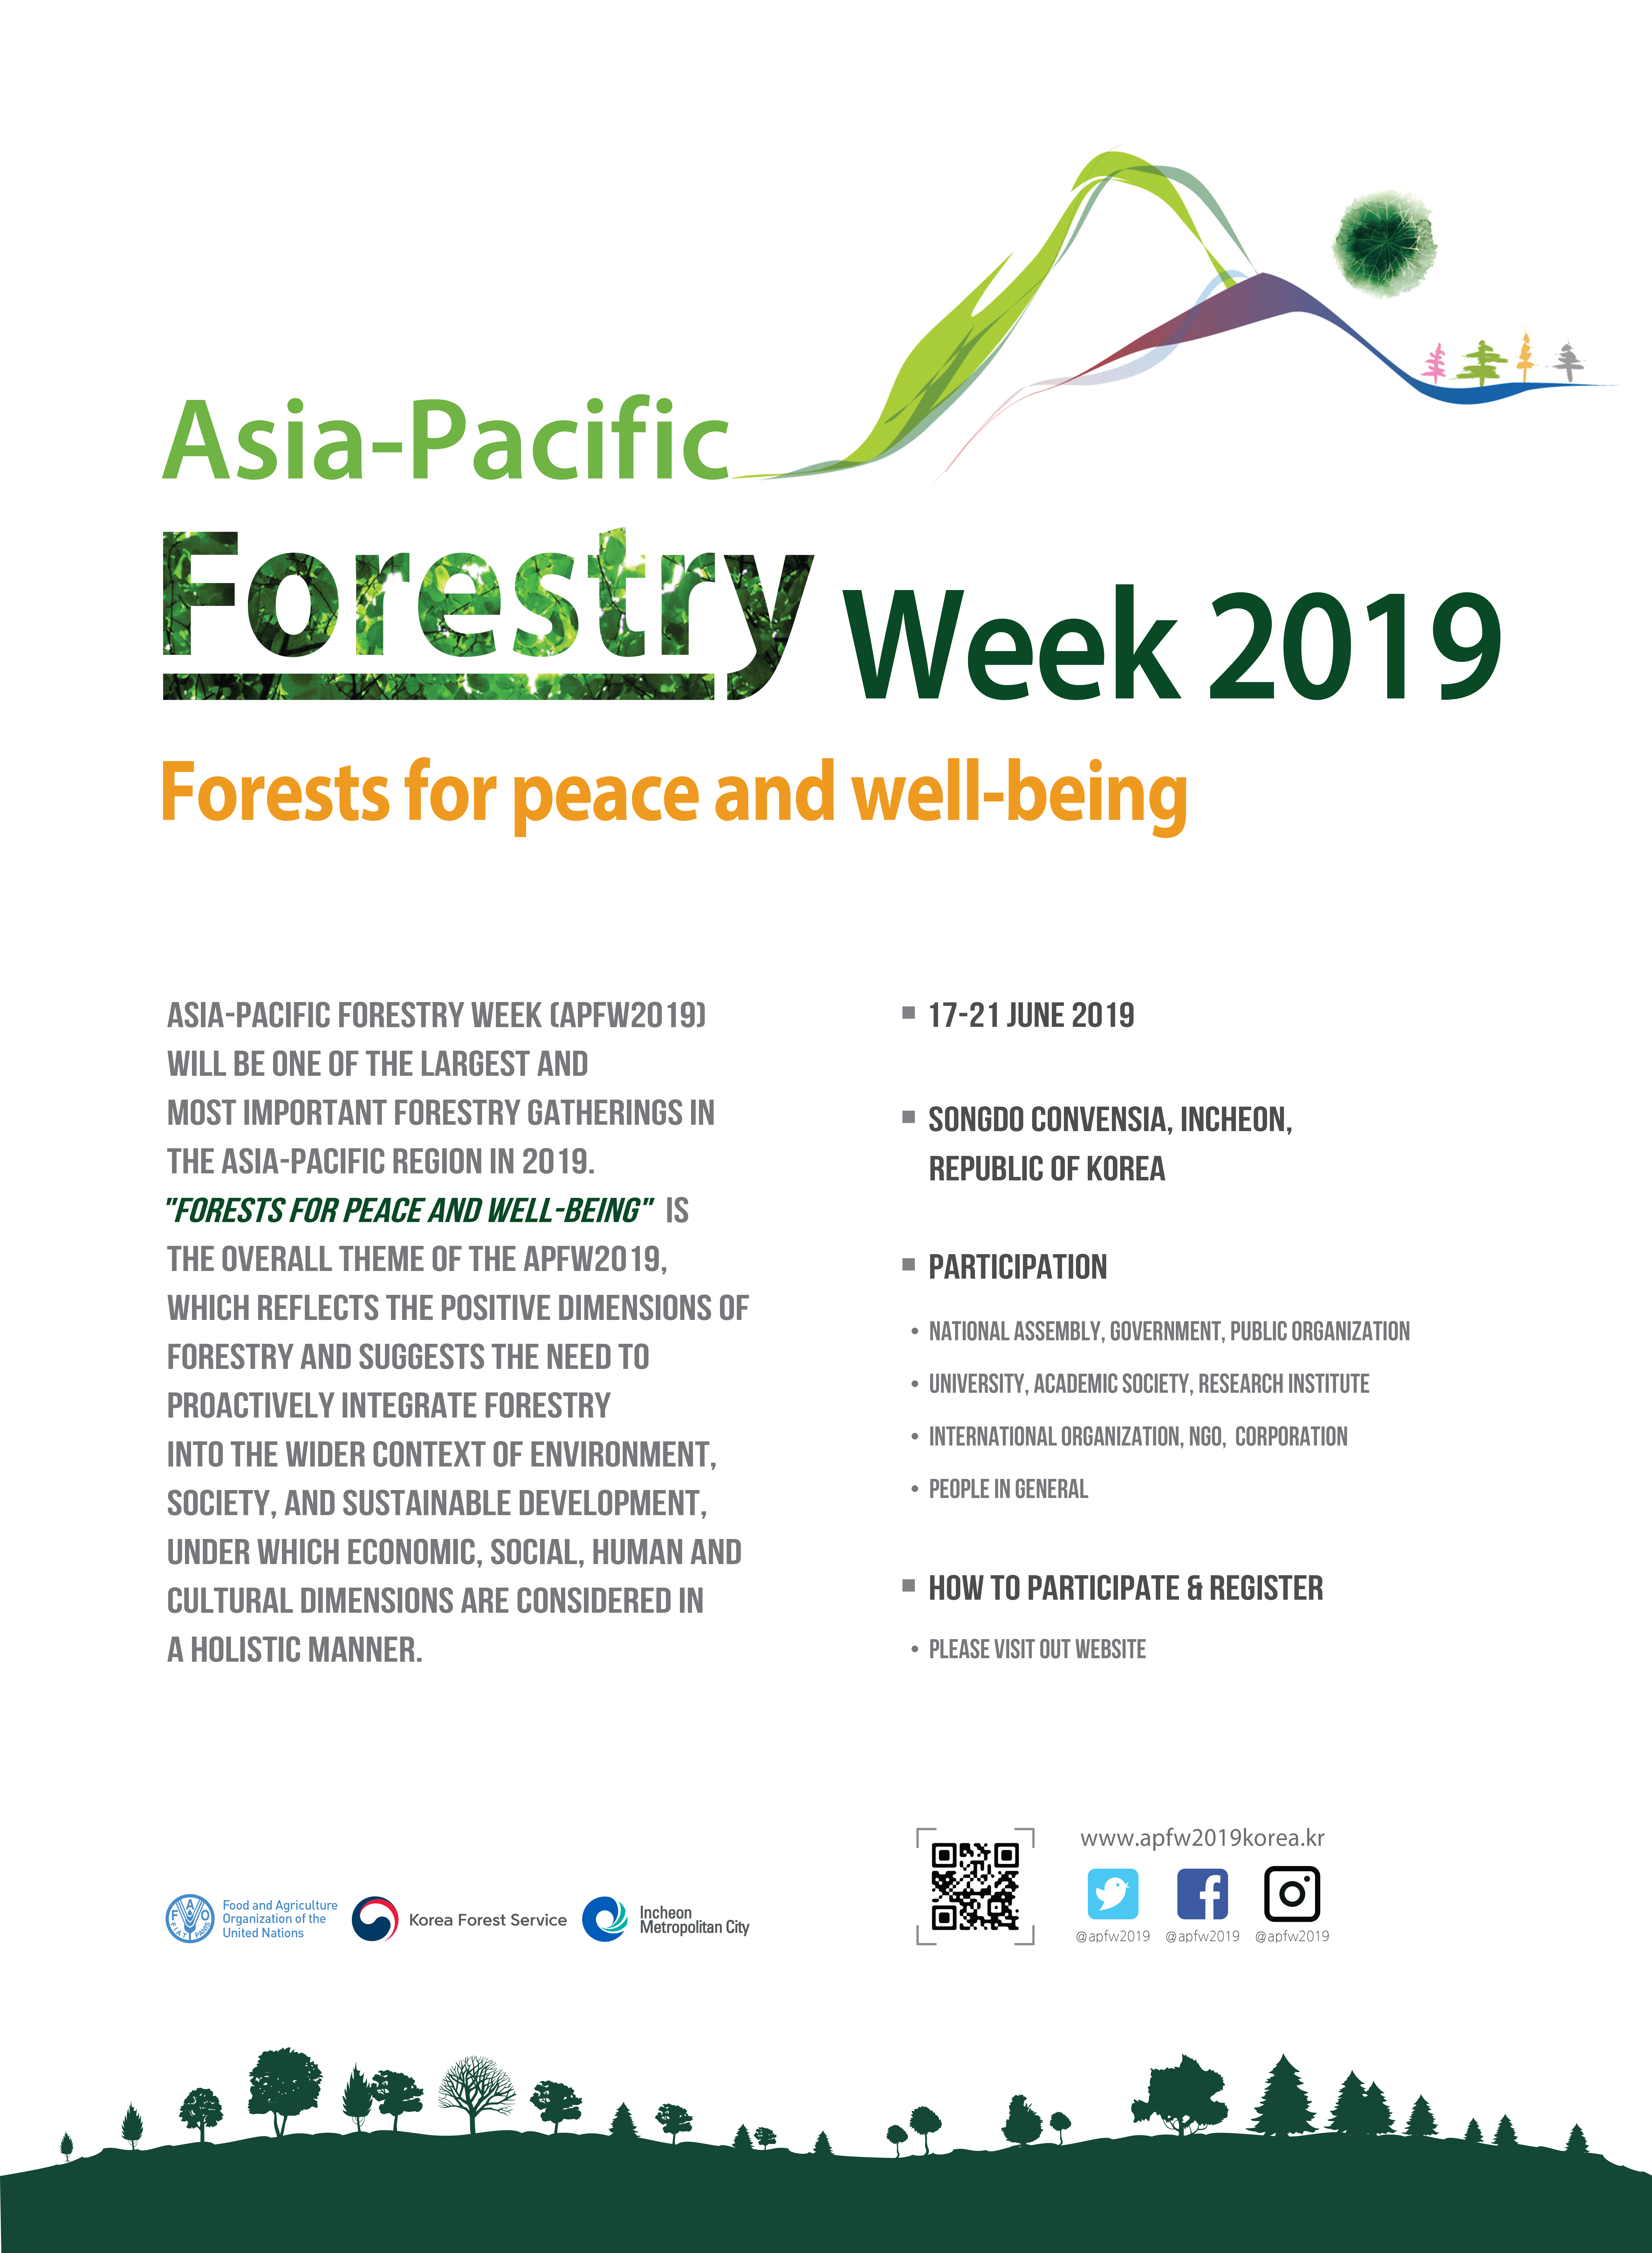 KFS hosts the 4th Asia-Pacific Forestry Week